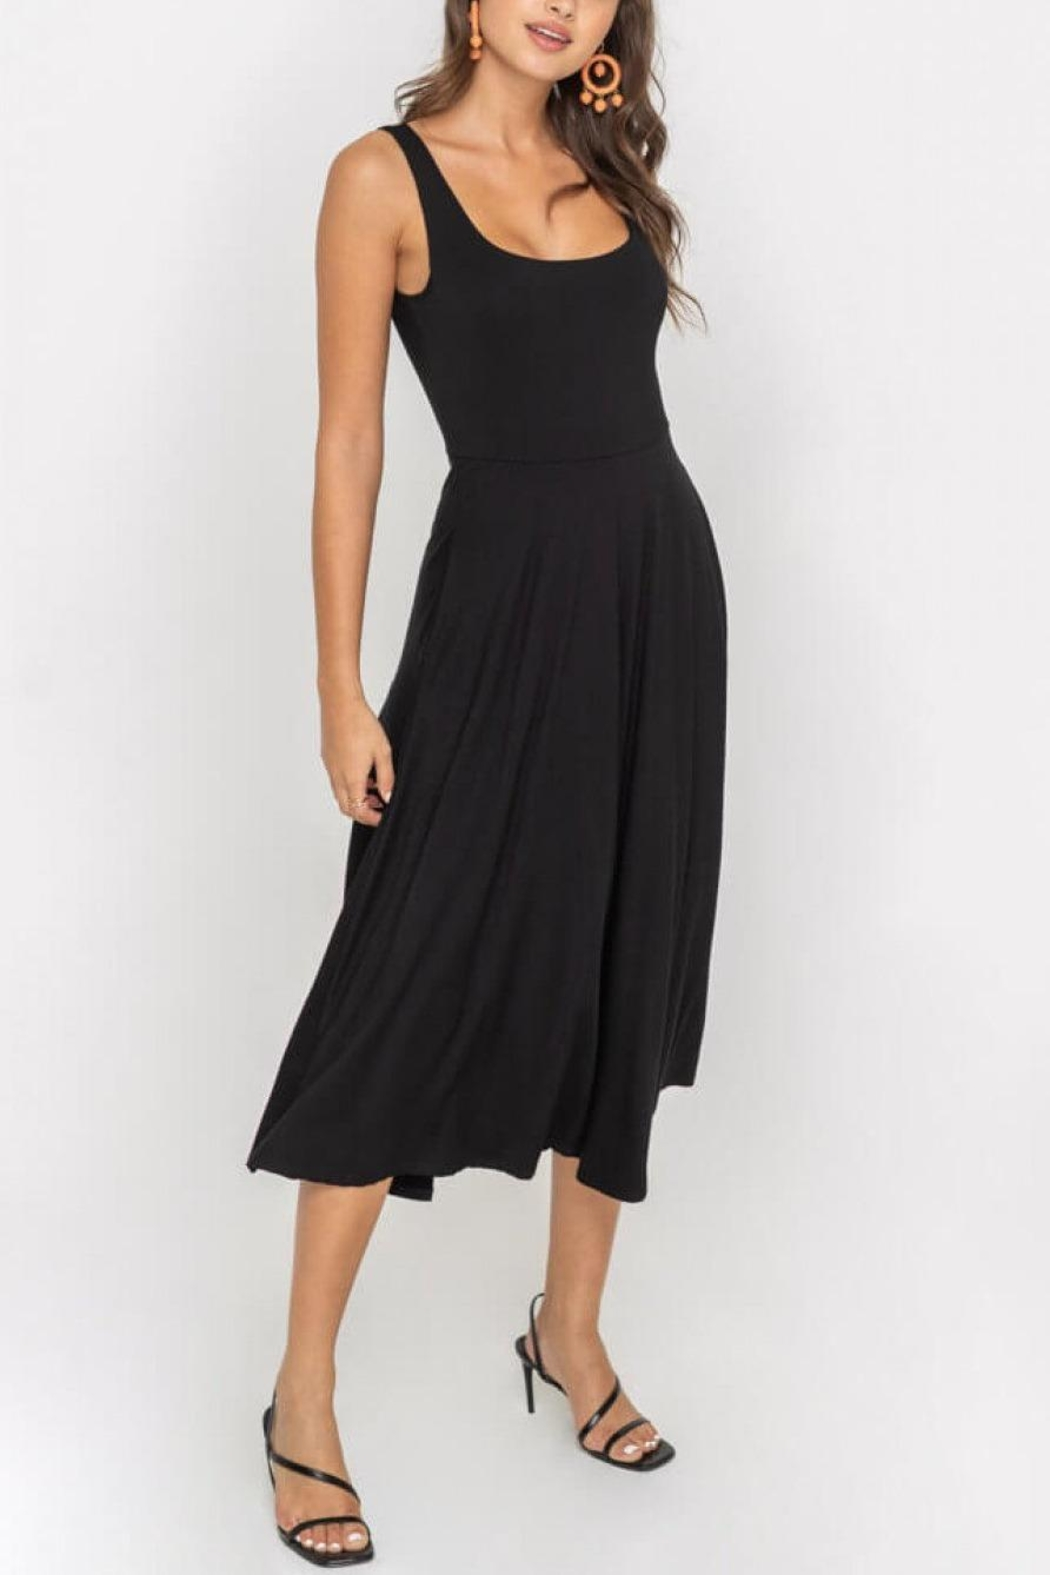 Lush Clothing  Square-Neckline Jersey Midi-Dress - Front Cropped Image